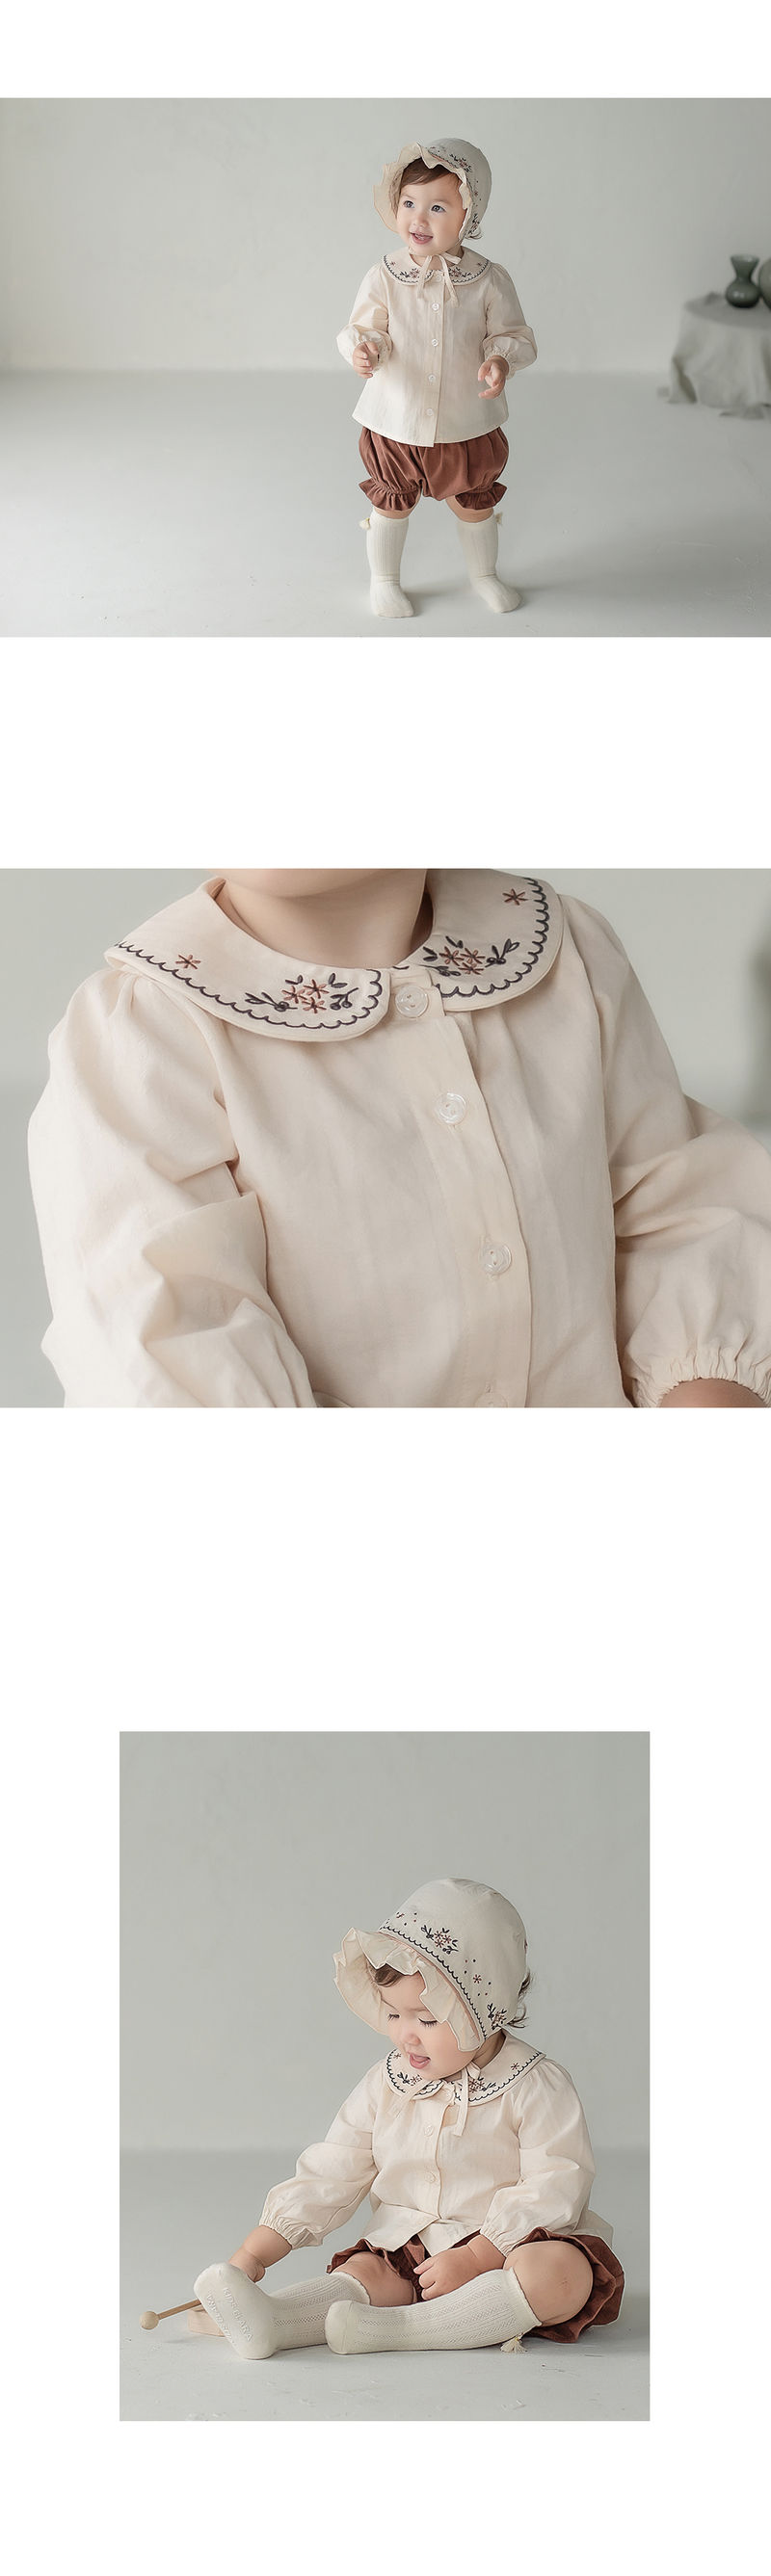 HAPPY PRINCE - Korean Children Fashion - #Kfashion4kids - Renova Baby Blouse - 2